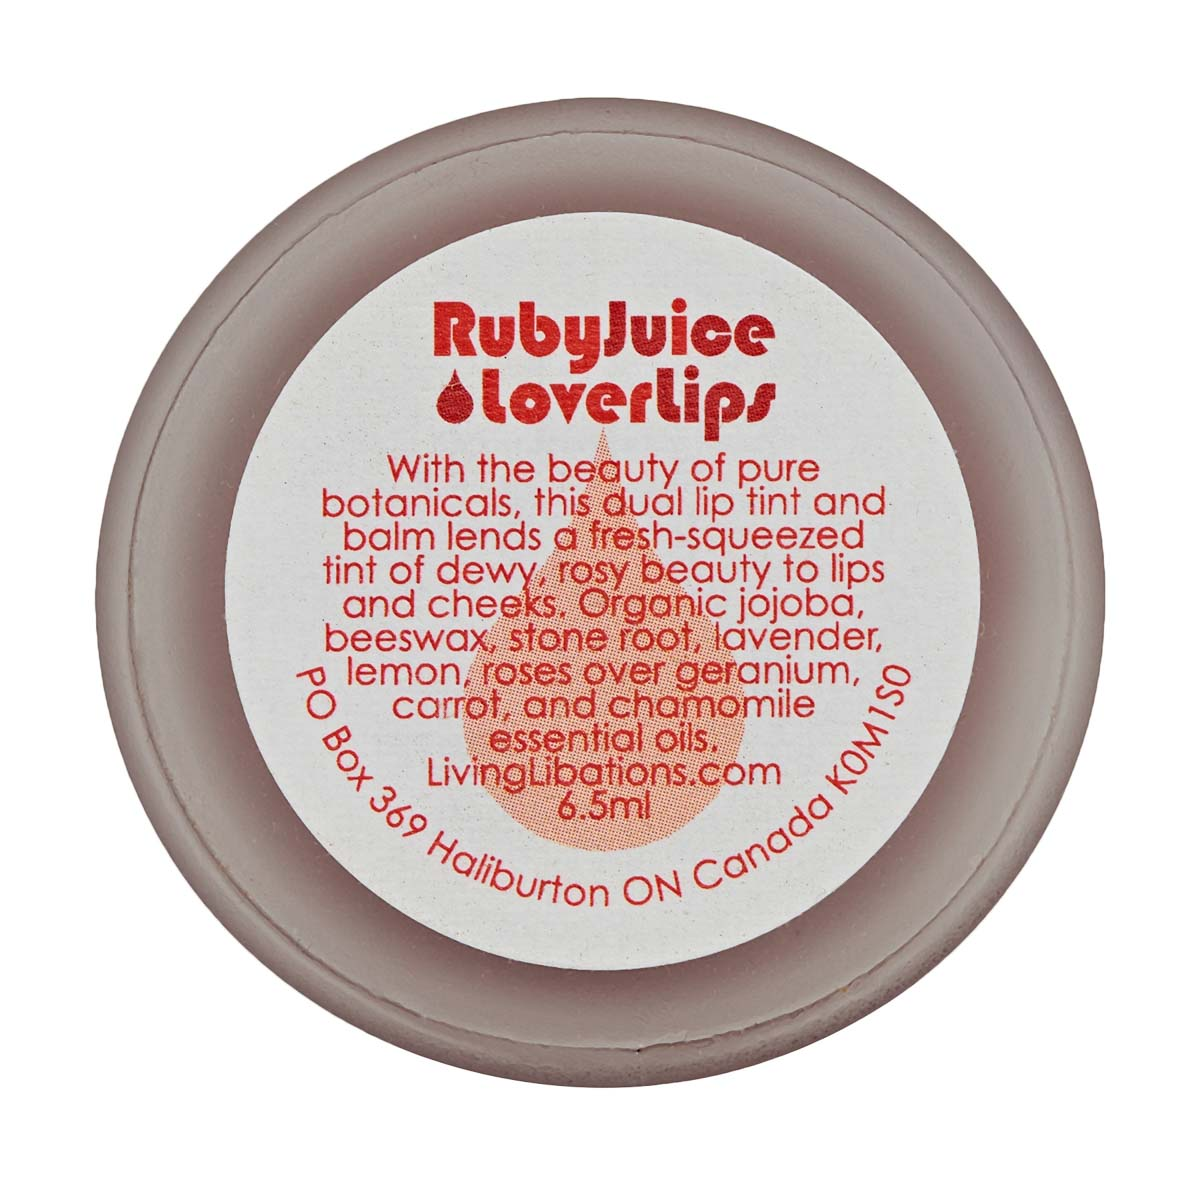 Living Libations - Ruby Juice Lover Lips